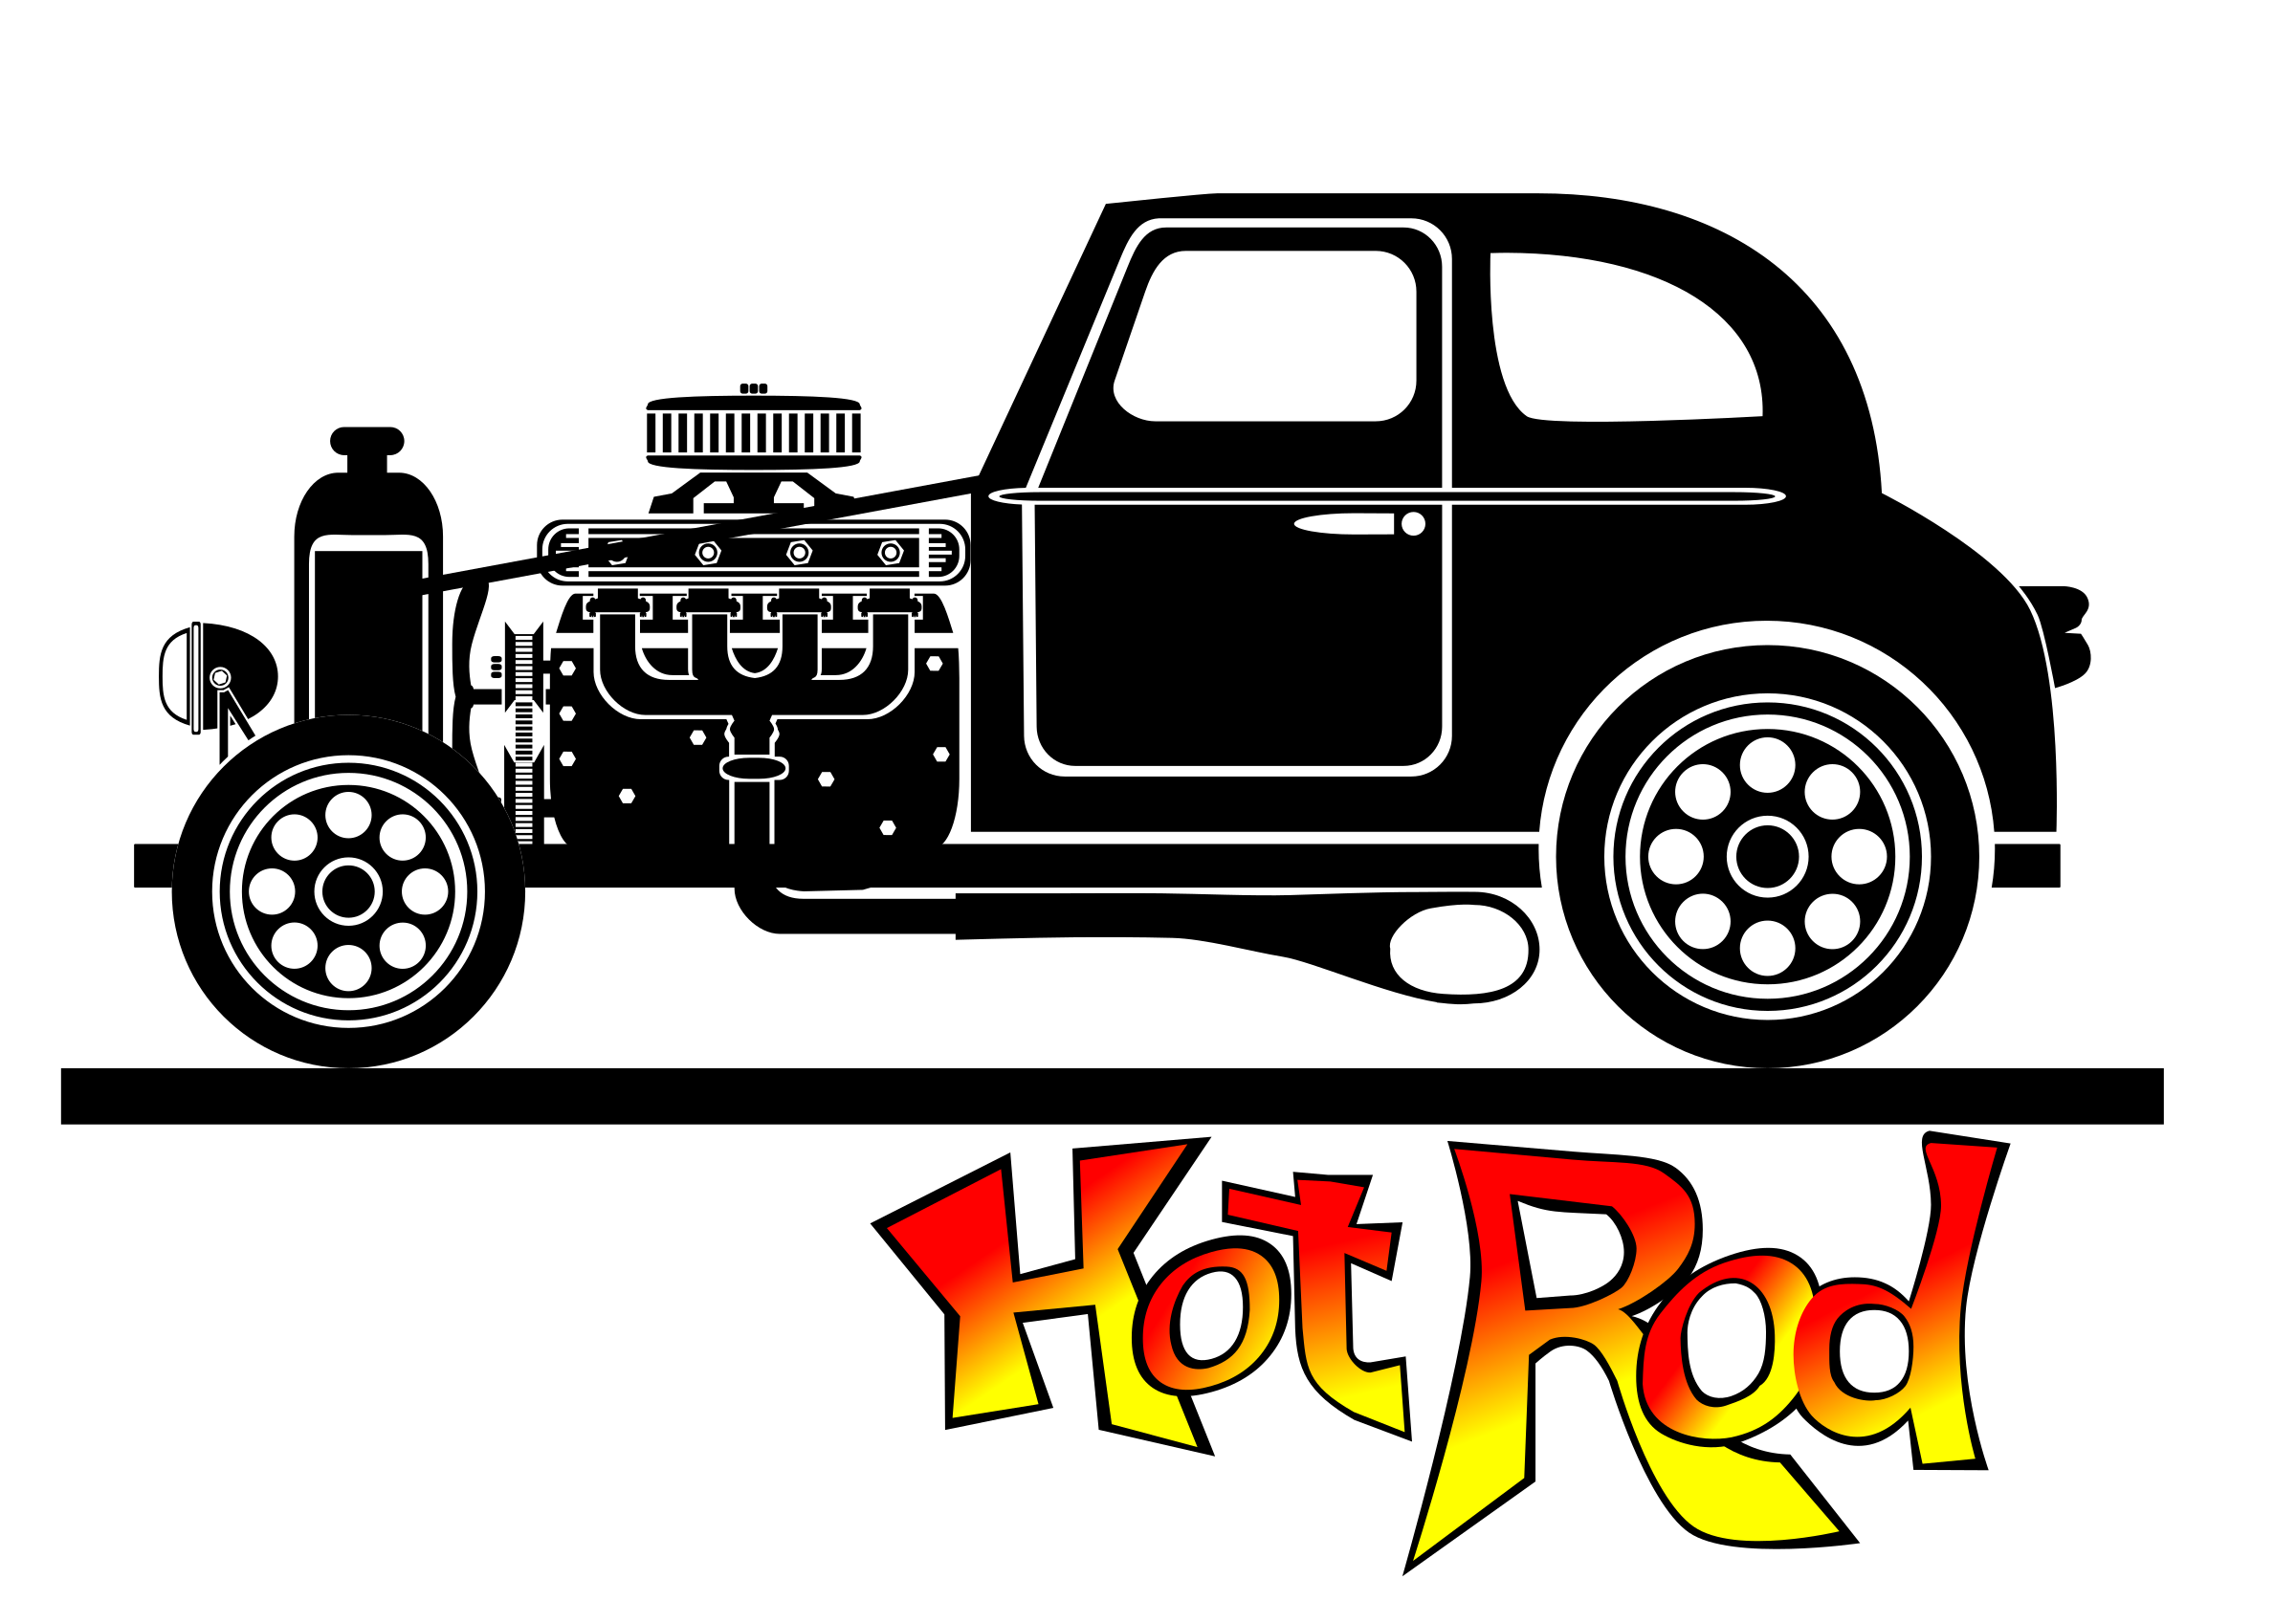 Engine clipart hot rod engine. Icons png free and